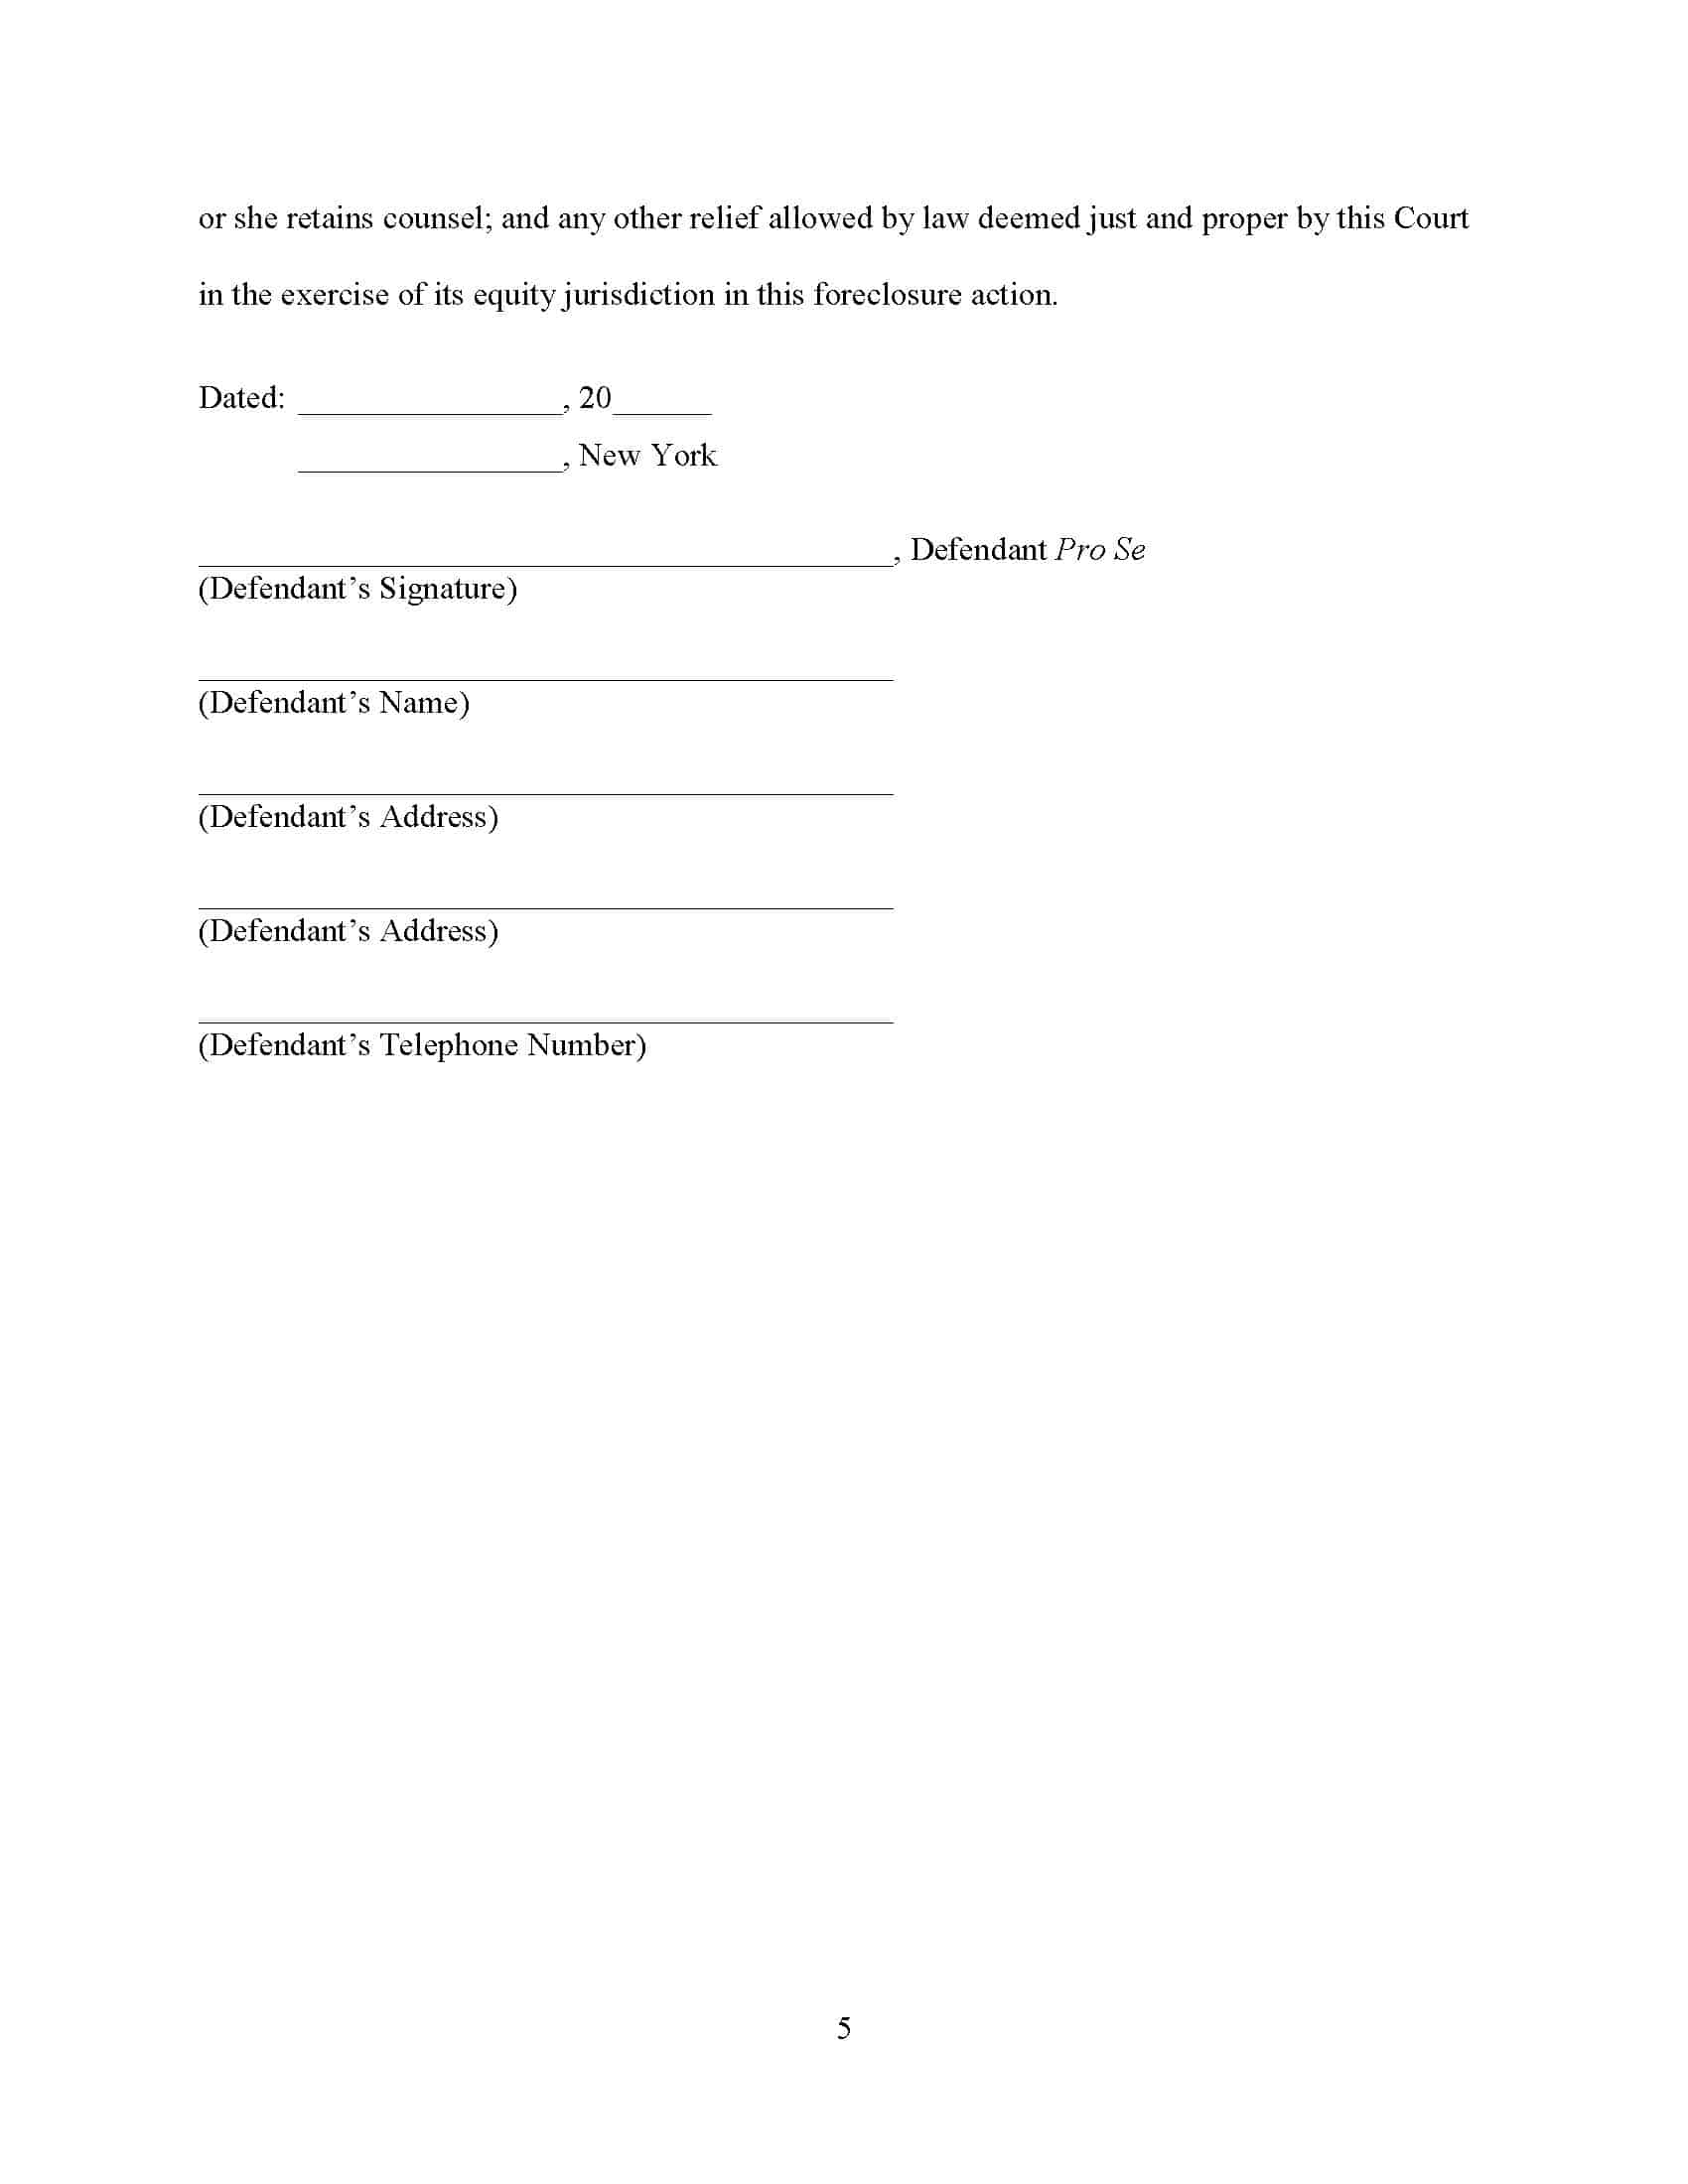 Affermative deffenses in NEW YORK foreclosure signature page for the pro se